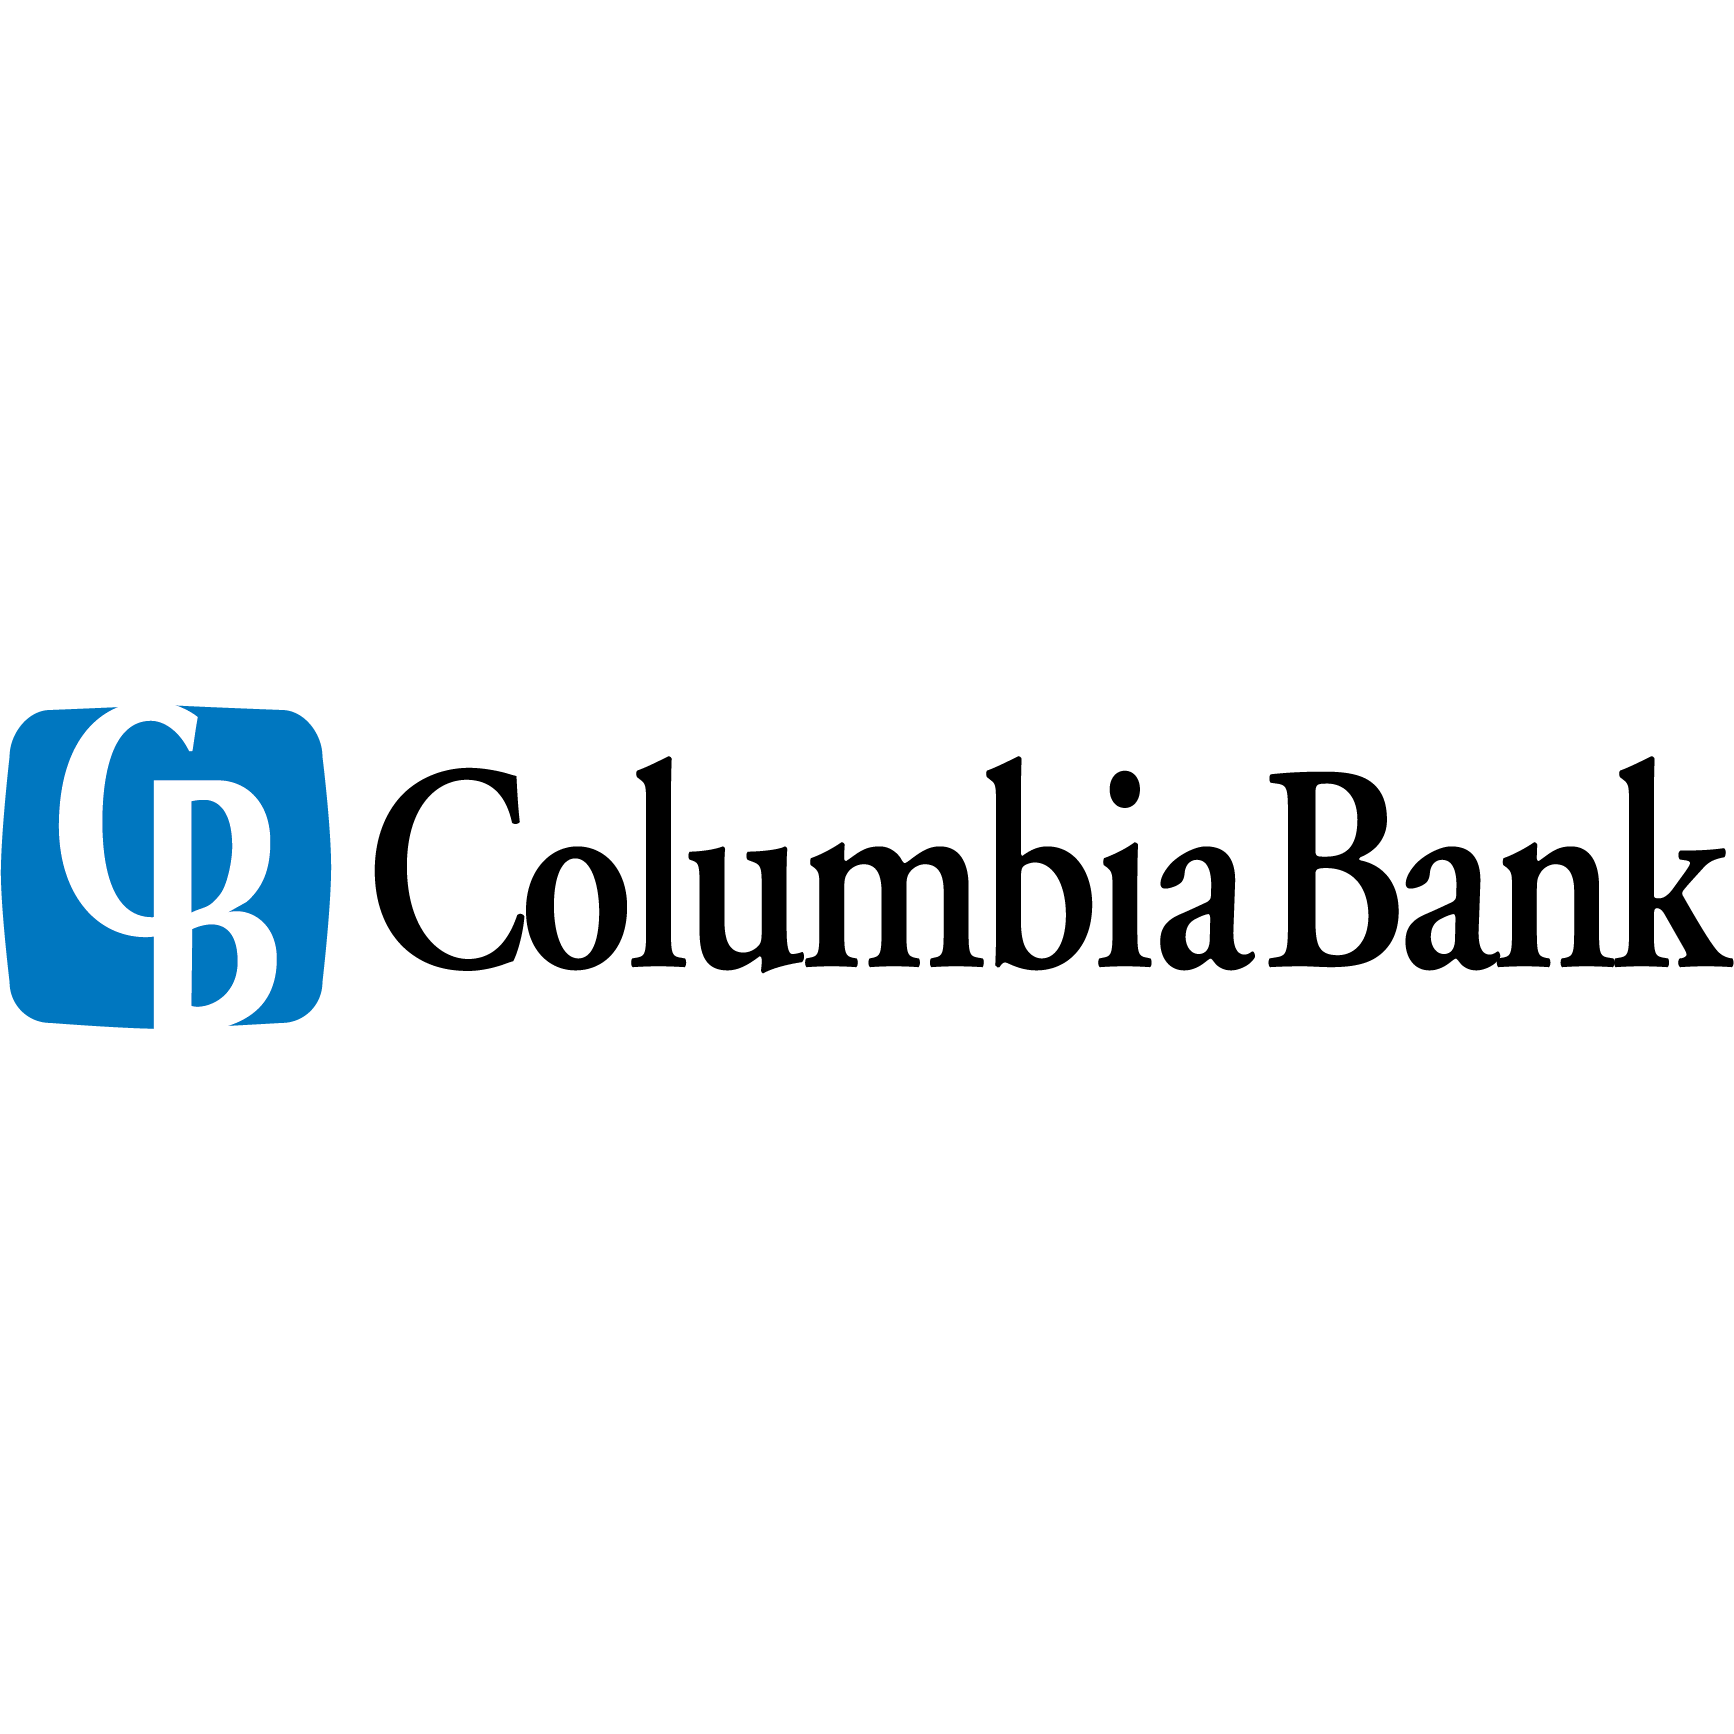 Columbia Bank - Bonney Lake, WA - Banking